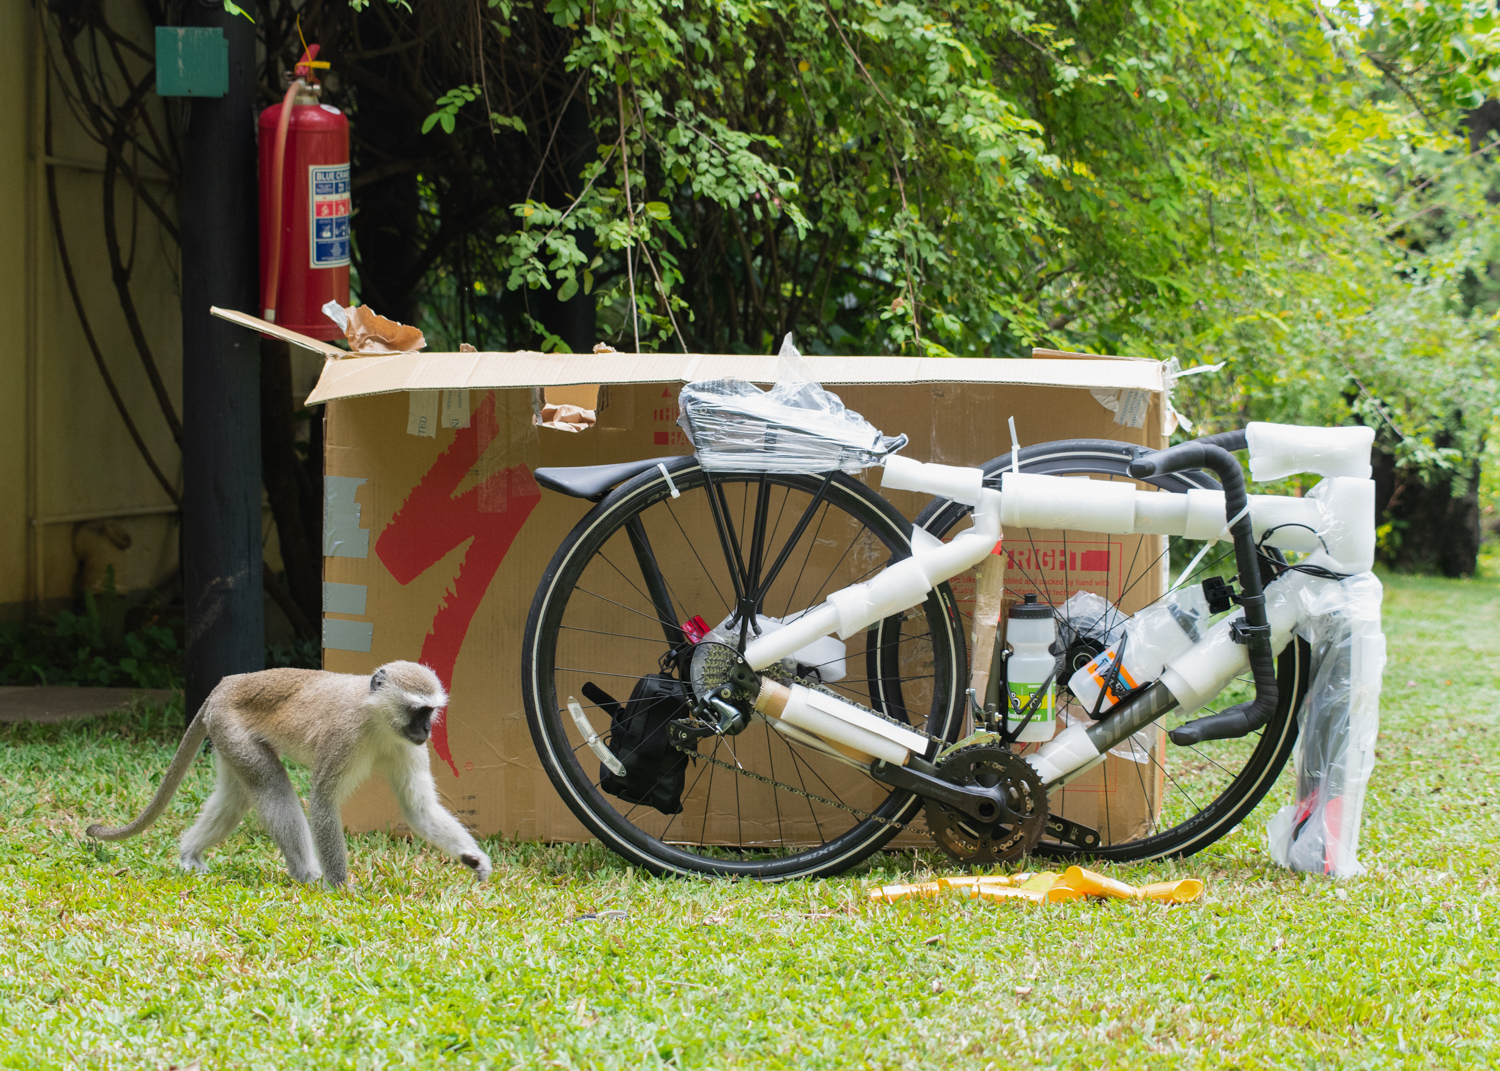 I was taking joyful photos of my bicycle when finally arrived after a long delay with British Air, when a sneaky monkey walked casually onto the scene, preparing for the theft.